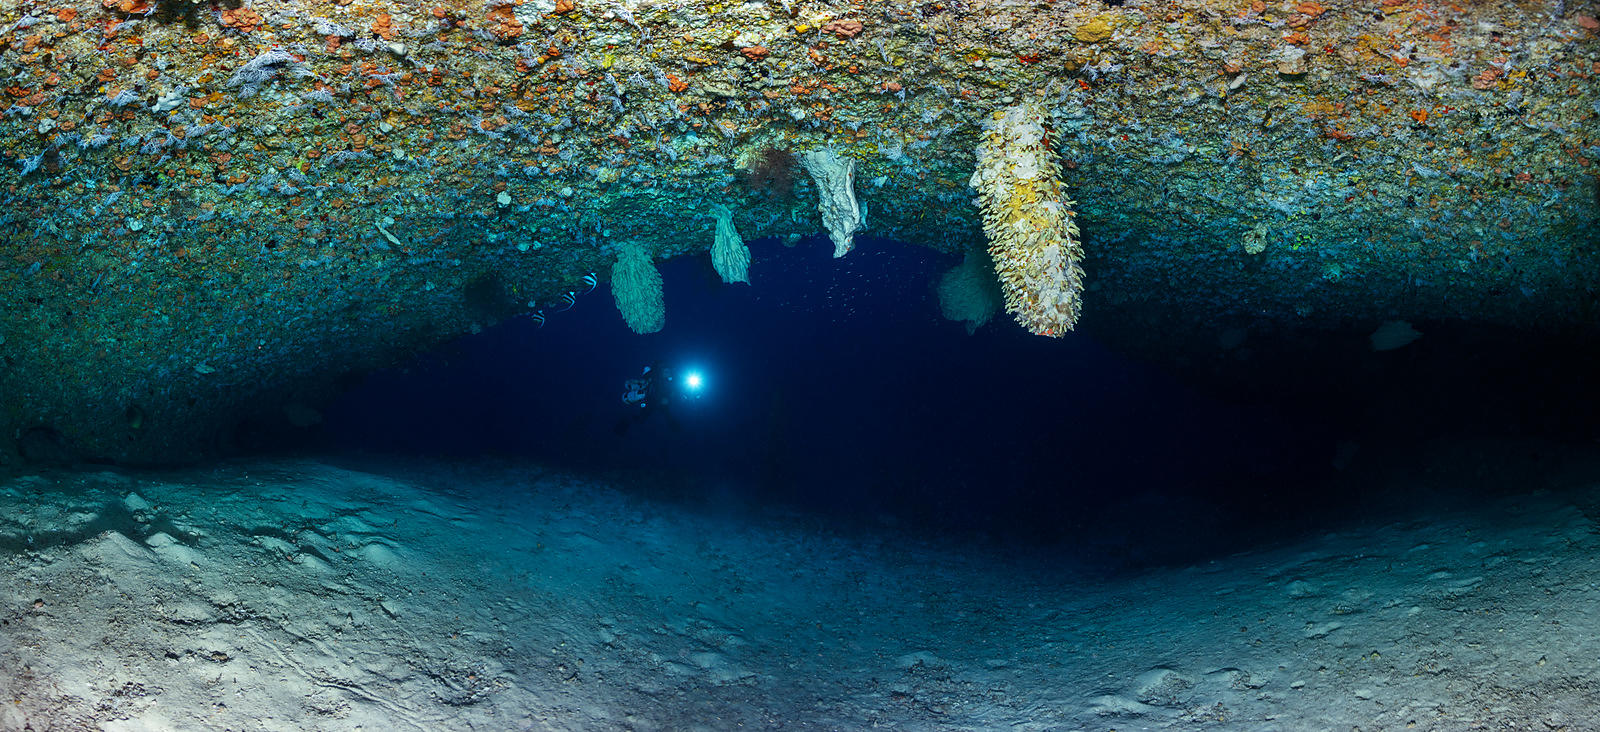 Underwater cave of Twilight zone